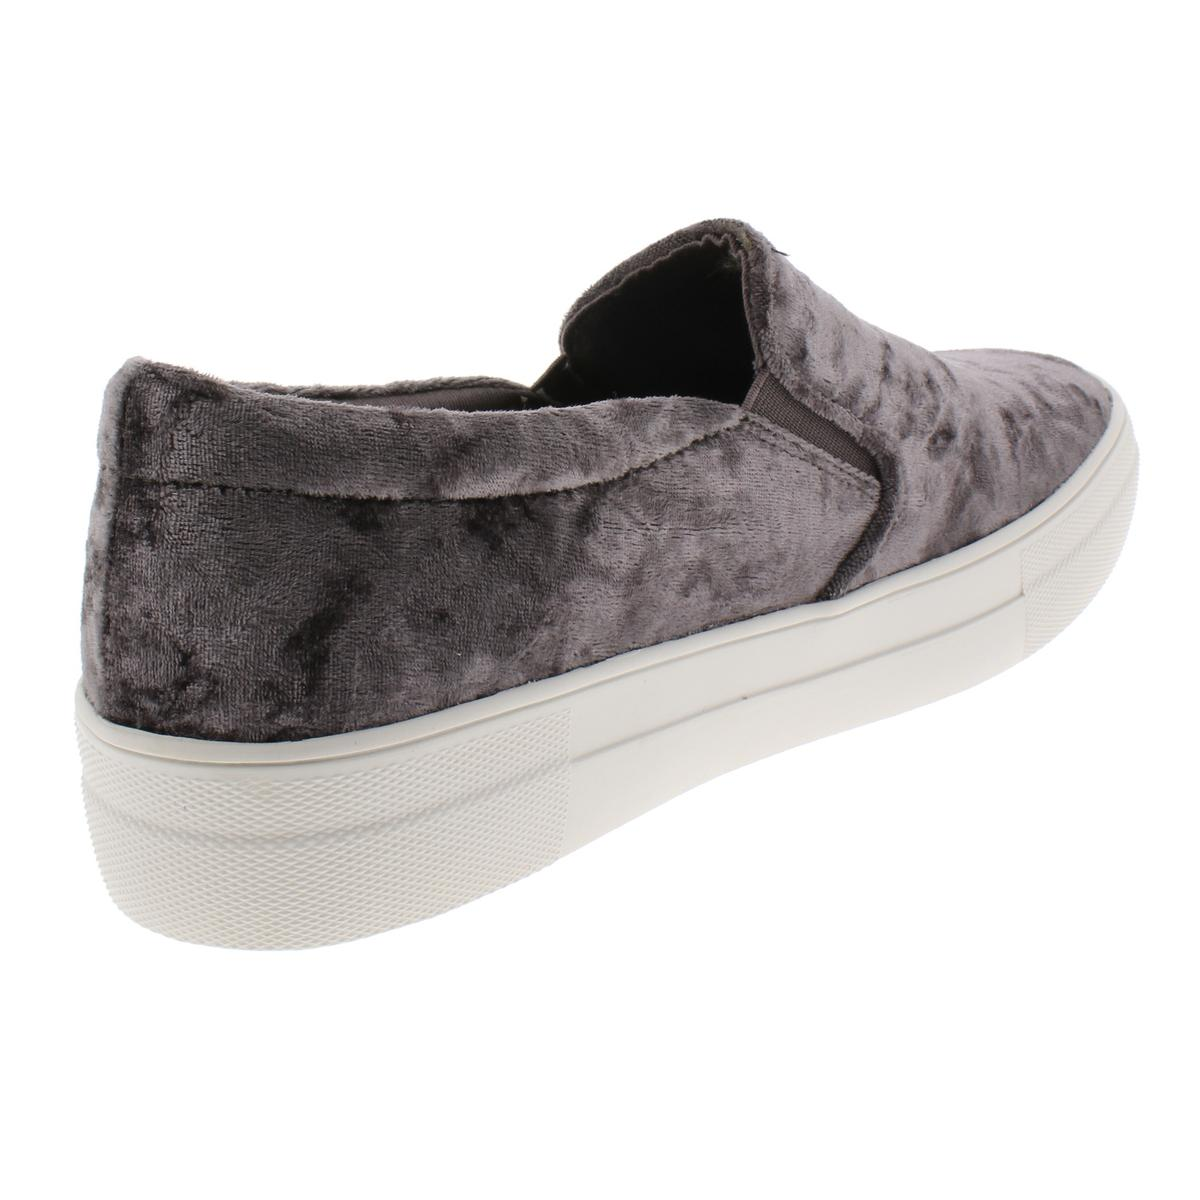 Steve-Madden-Womens-Gills-Classic-Low-Top-Fashion-Loafers-Sneakers-BHFO-8263 thumbnail 12